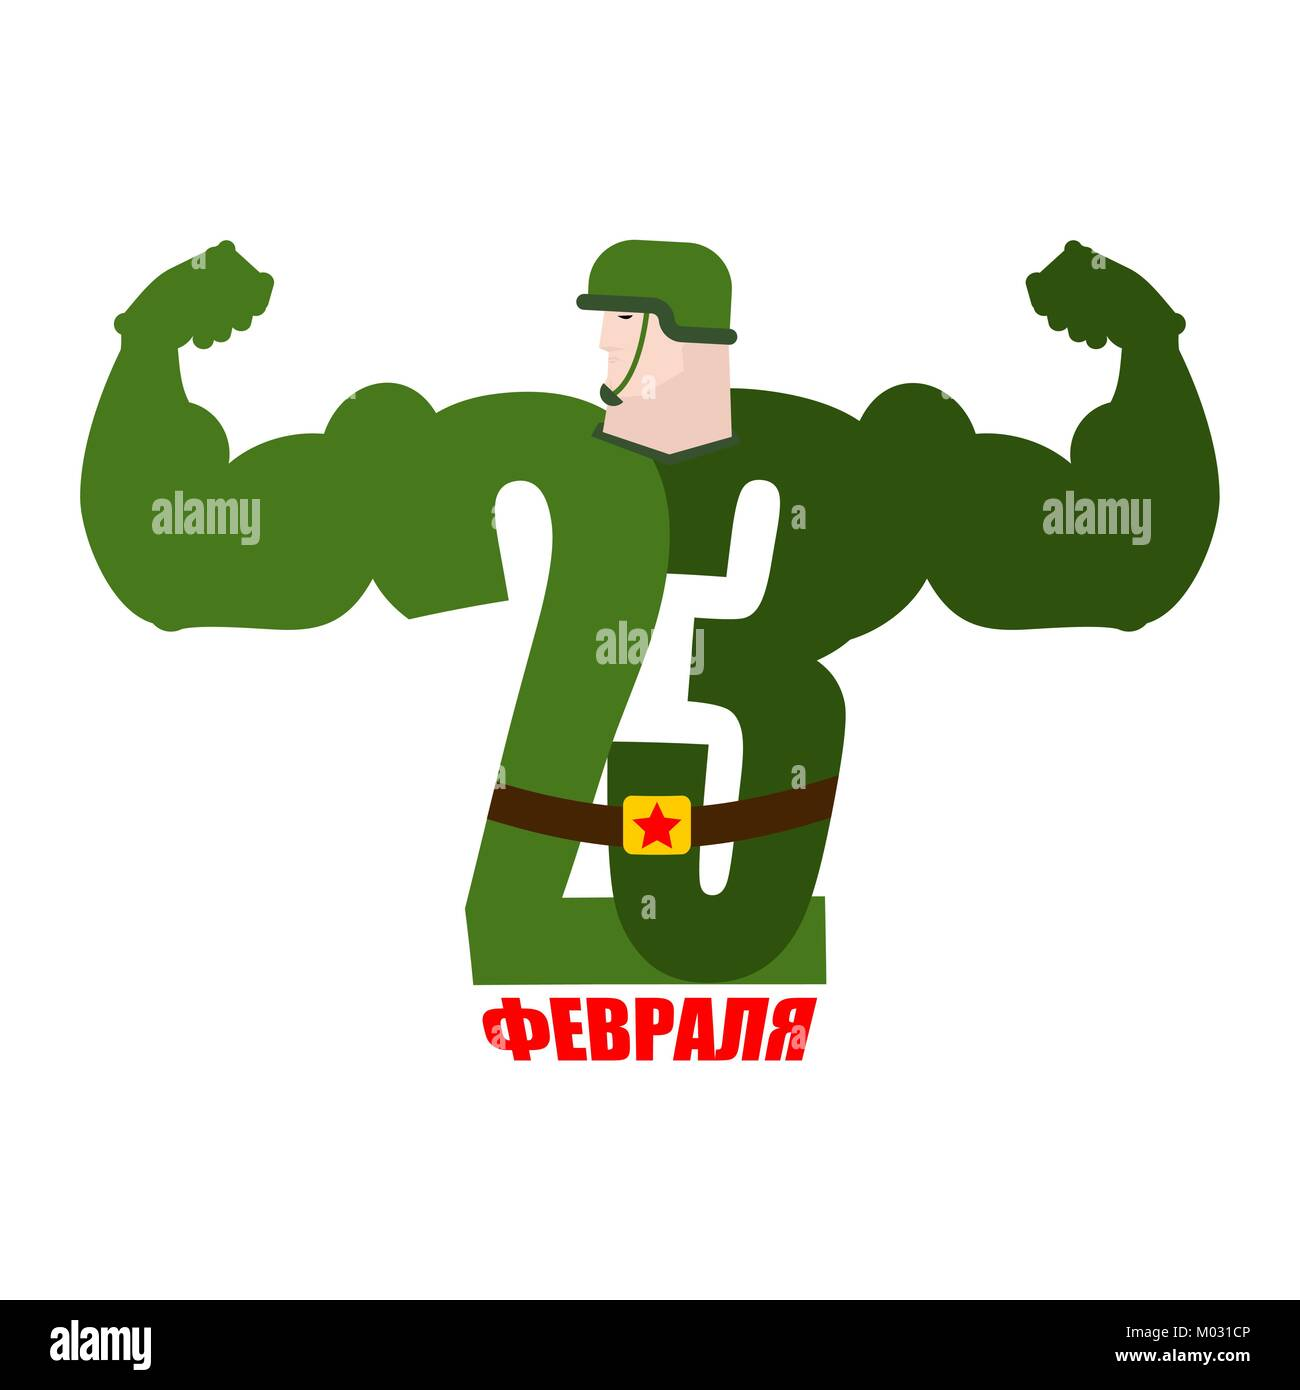 23 February strong sign. Defender of Fatherland Day. Military holiday in Russia. Translating Russian text: 23 February. - Stock Vector